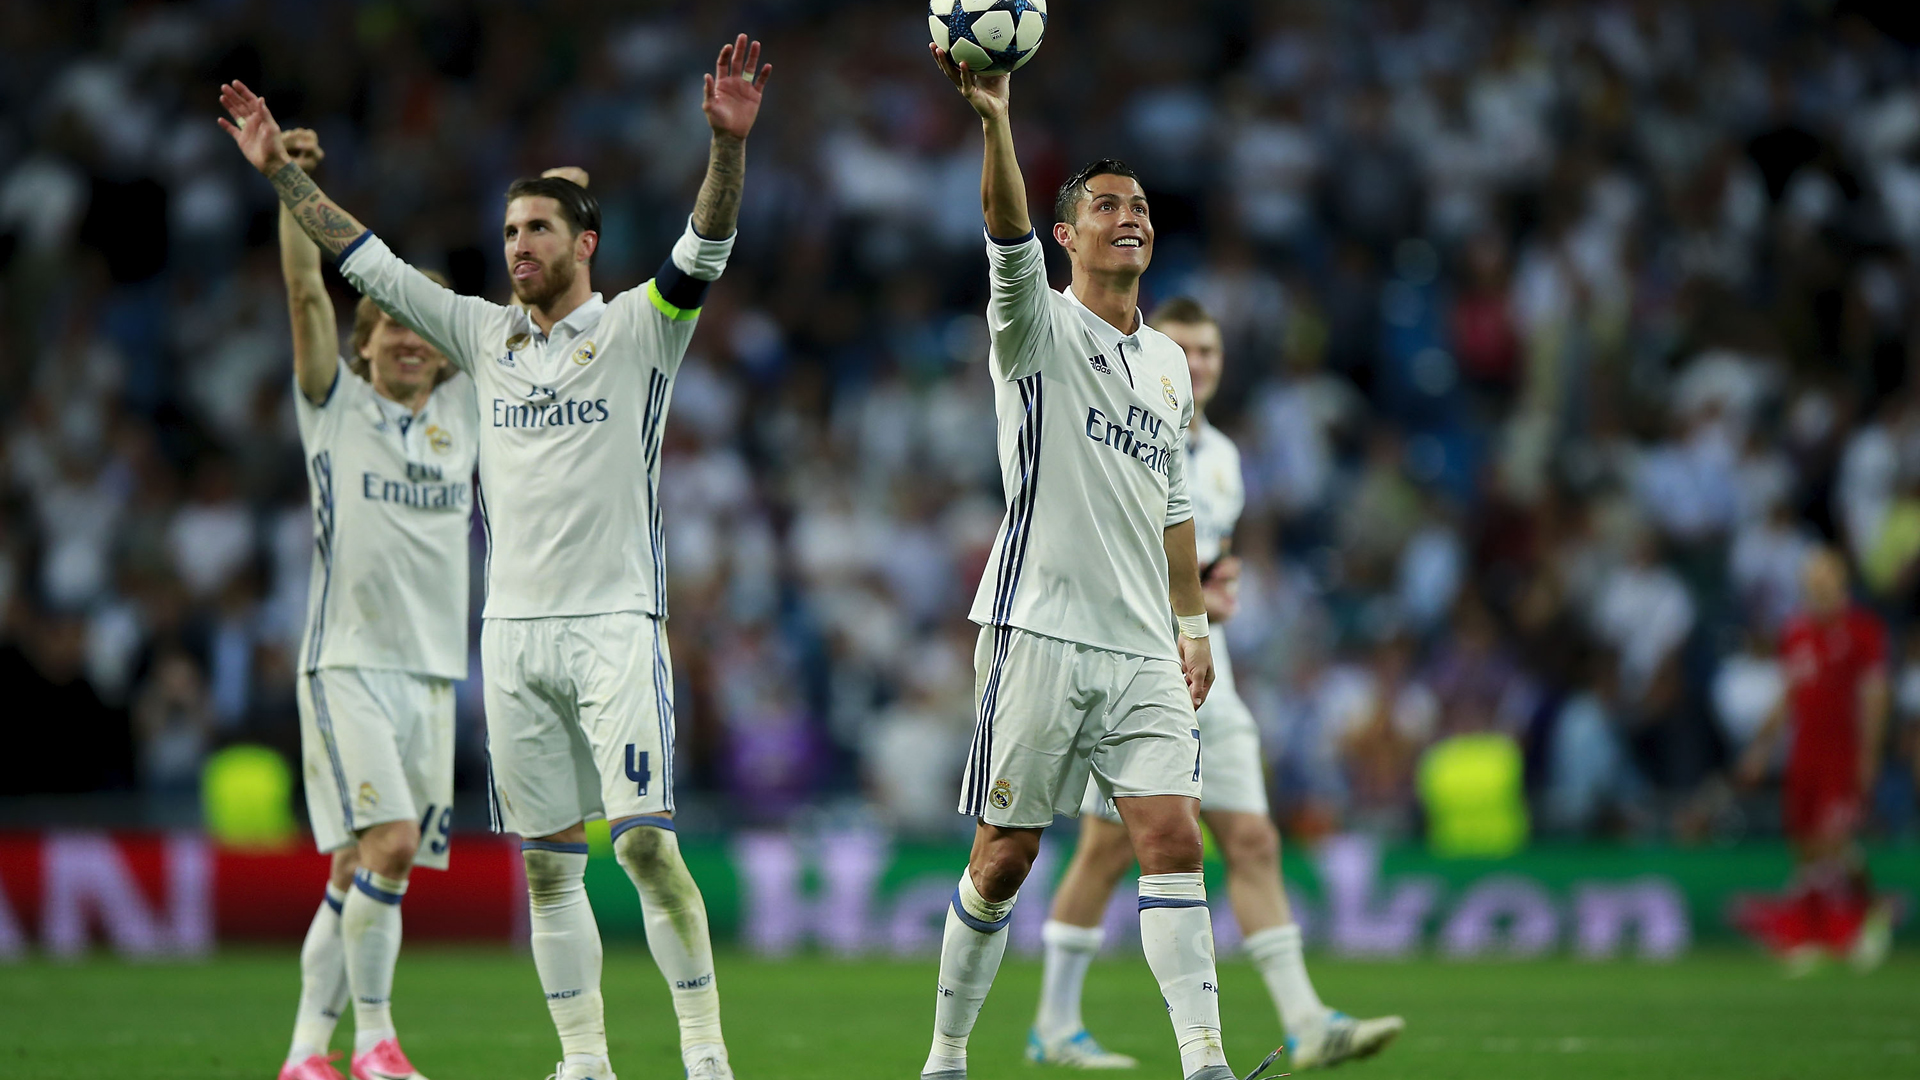 Real Madrid aims to finish off Bayern Munich in Champions League quarterfinals